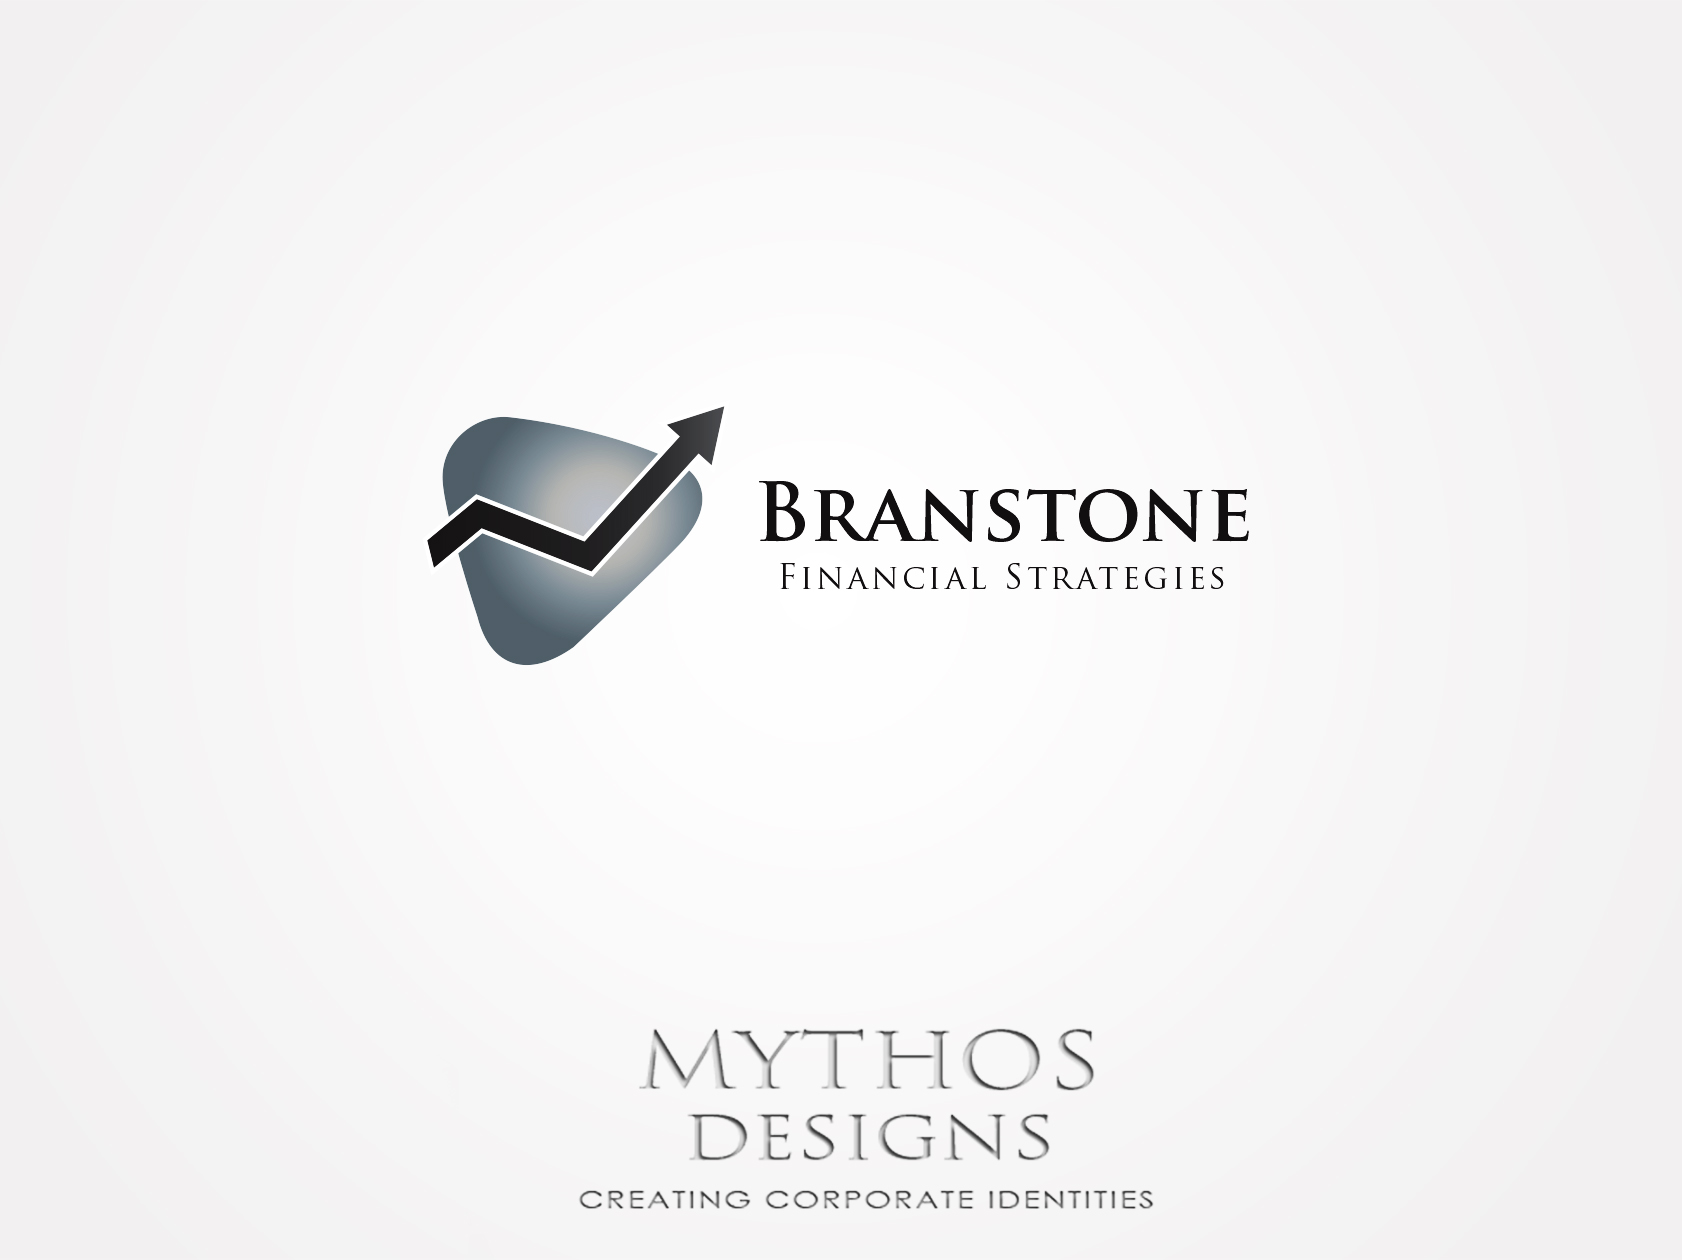 Logo Design by Mythos Designs - Entry No. 15 in the Logo Design Contest Inspiring Logo Design for Branstone Financial Strategies.